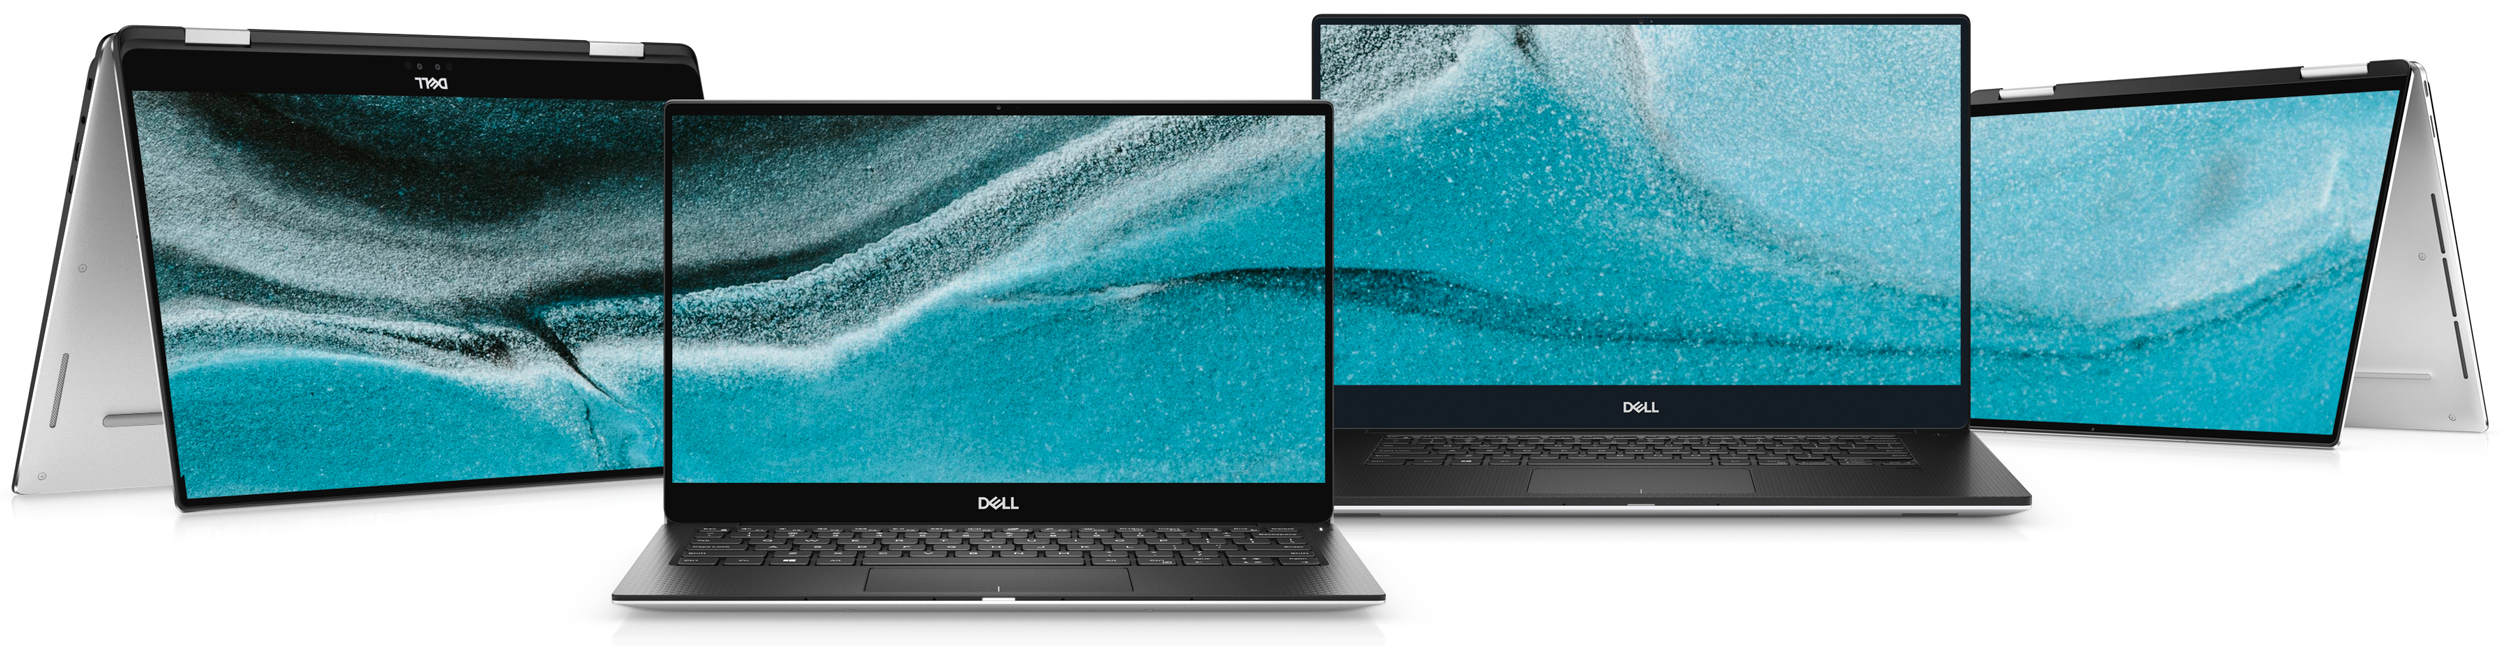 Dell's XPS 13 2-in-1 7390 Available: Intel's 10th Gen Core